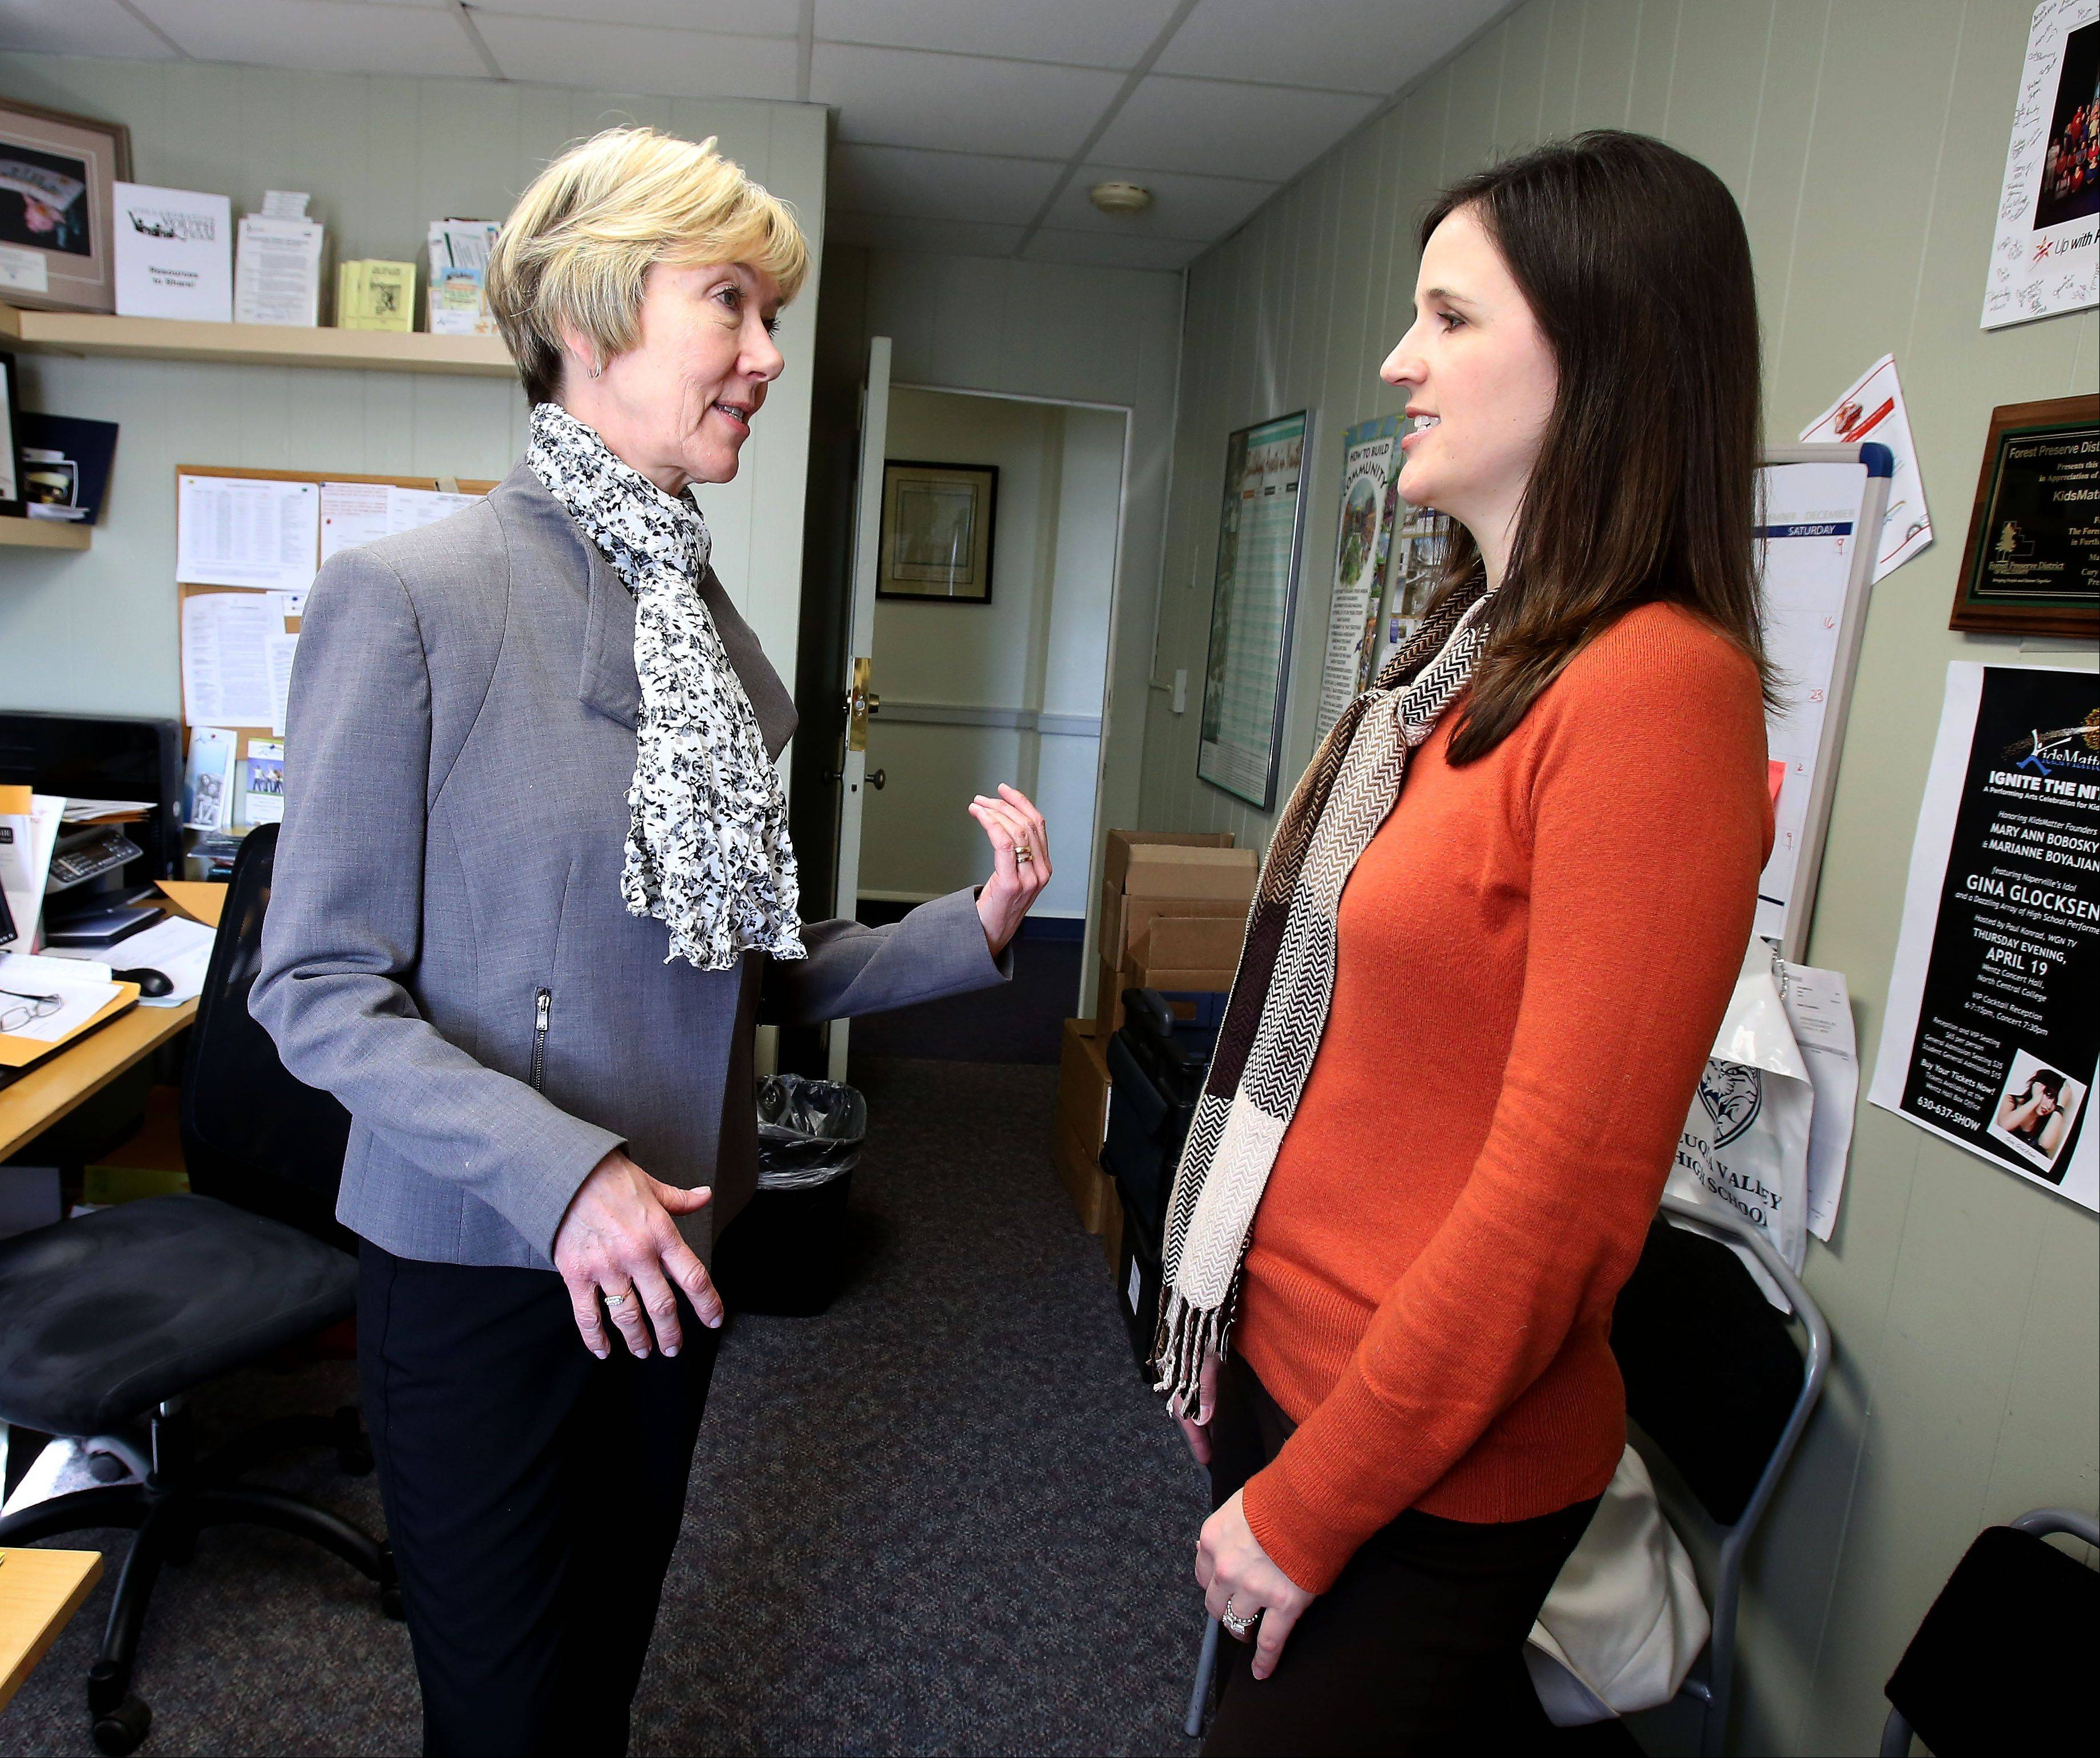 IdaLynn Wenhold, left, executive director of KidsMatter in Naperville, chats with Marion Ruthig, who started I Support Community. Wenhold believes that the video Ruthig�s organization will shoot of KidsMatter may be the best way to reach the hearts of donors.